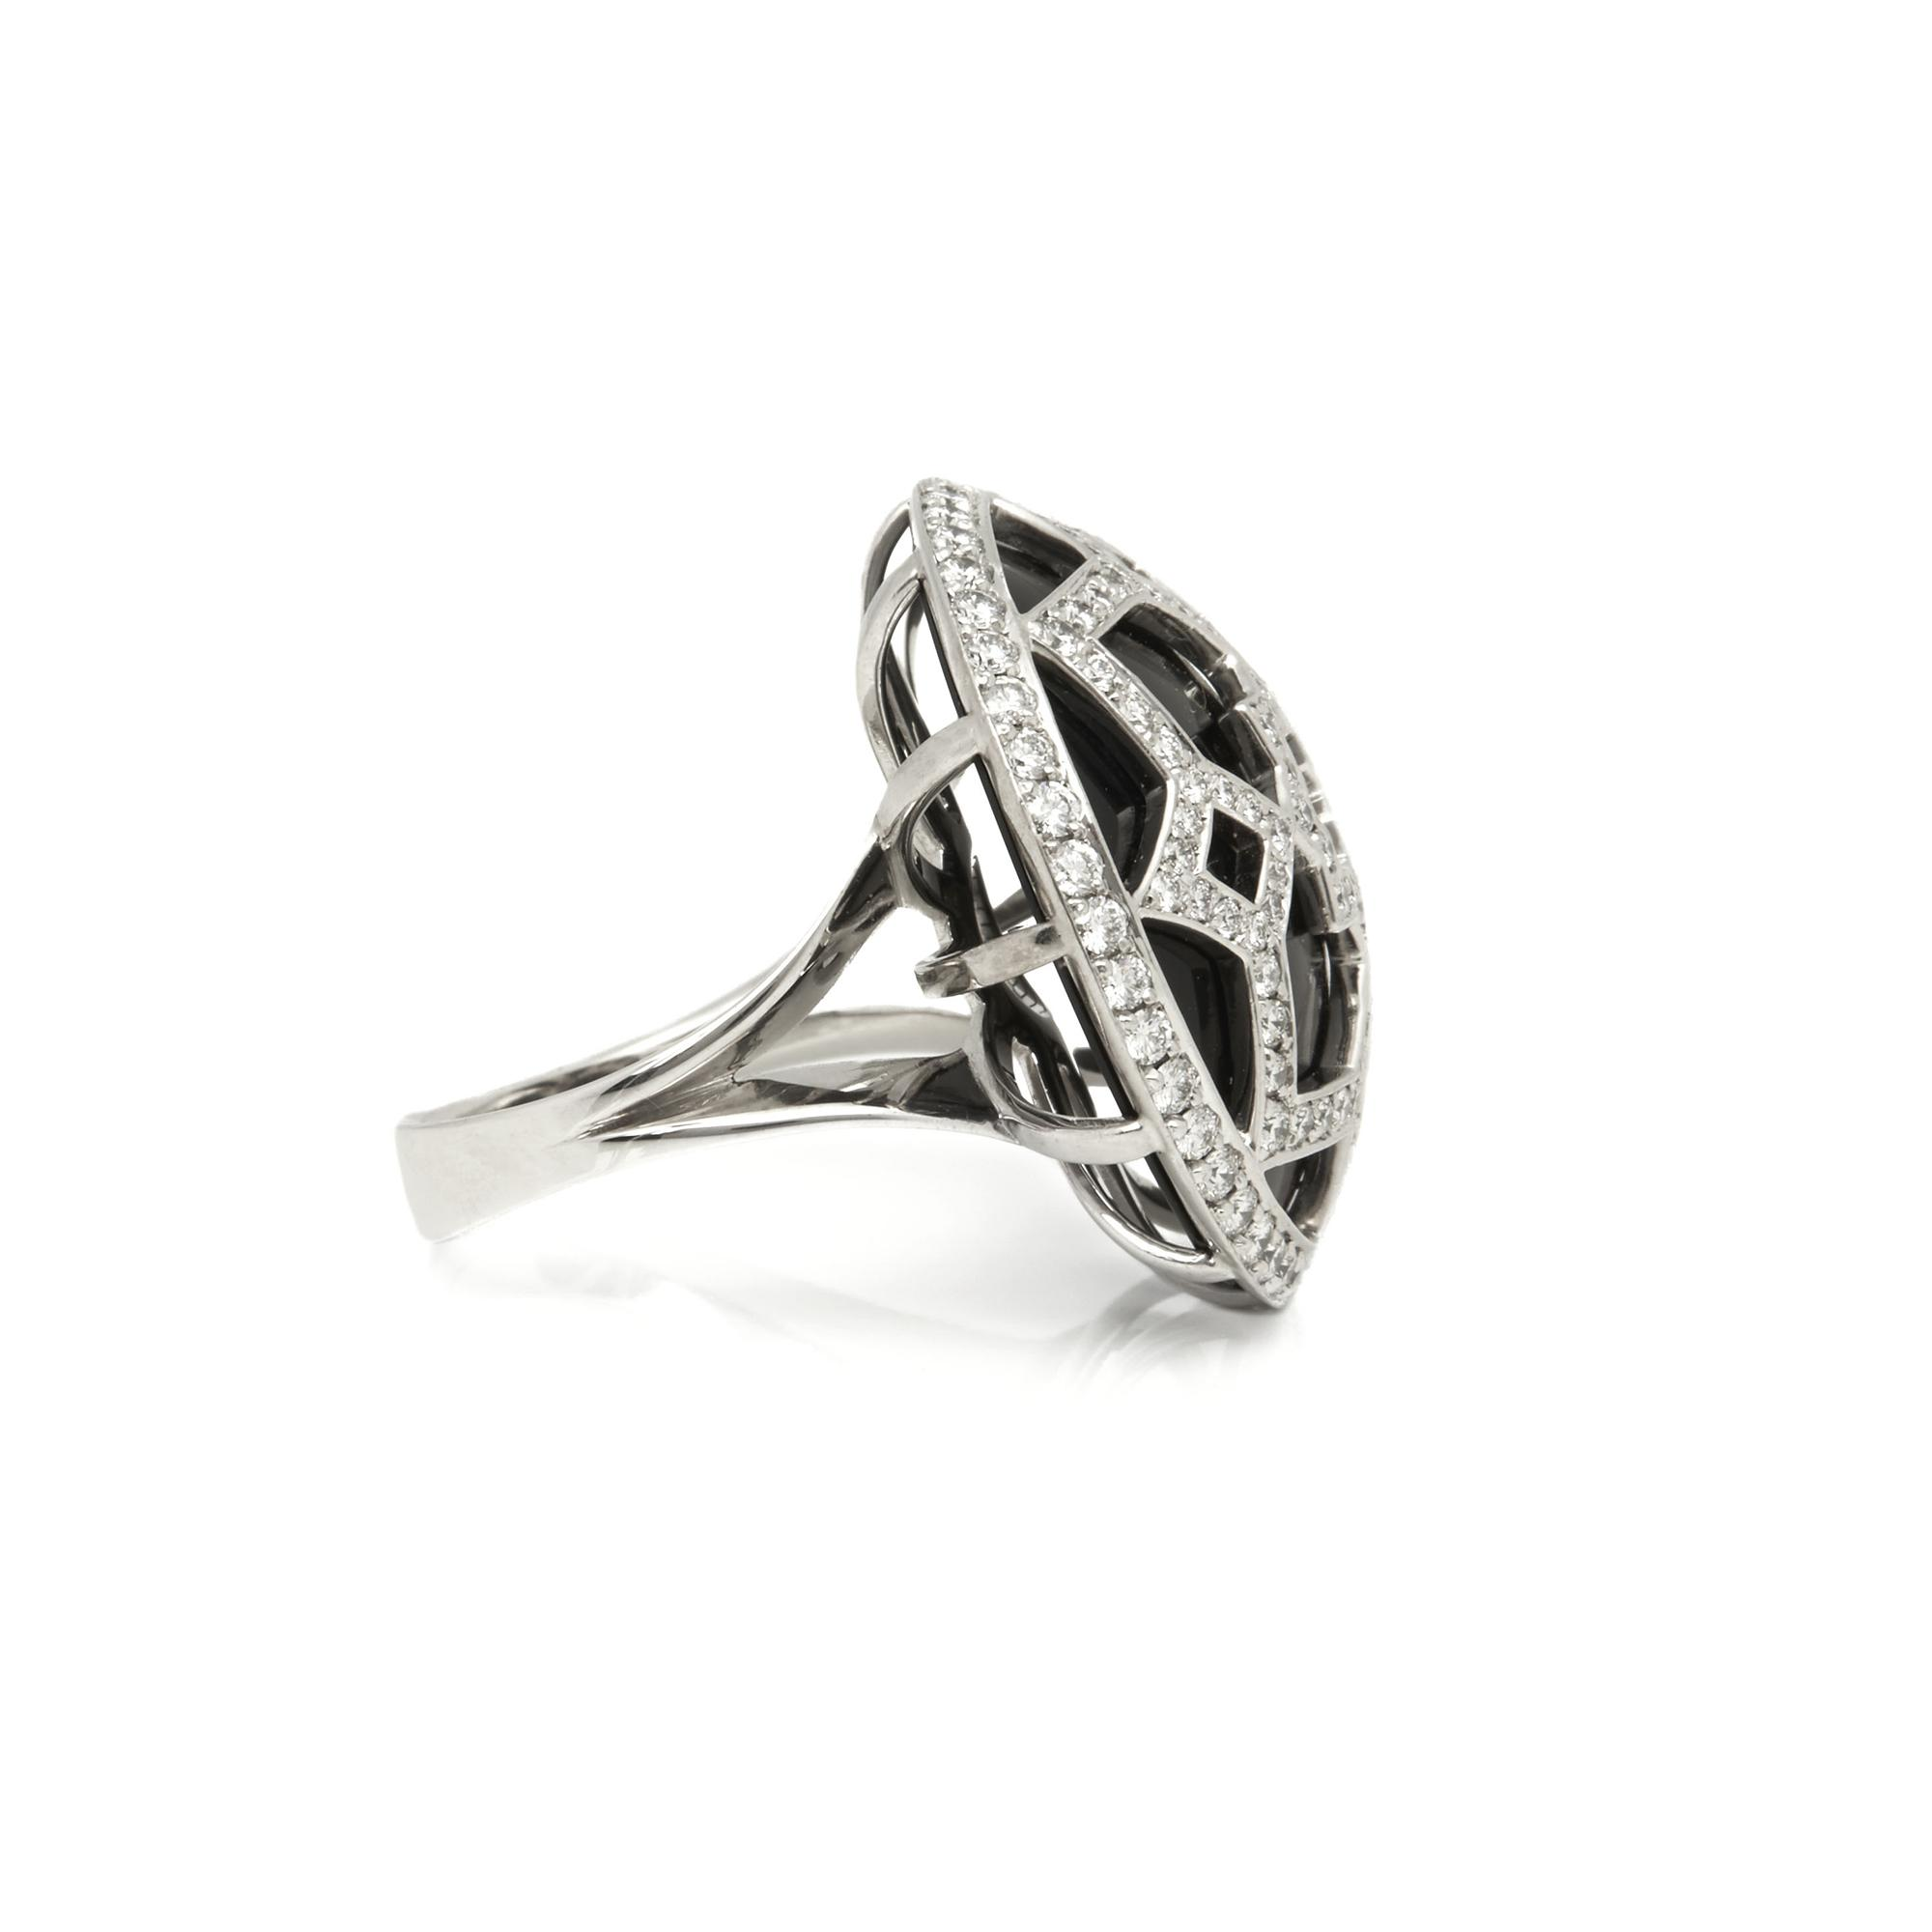 44b1ccfc2 ... 18k White Gold Onyx & Diamond Paloma Picasso Zellige Ring -. View  fullscreen